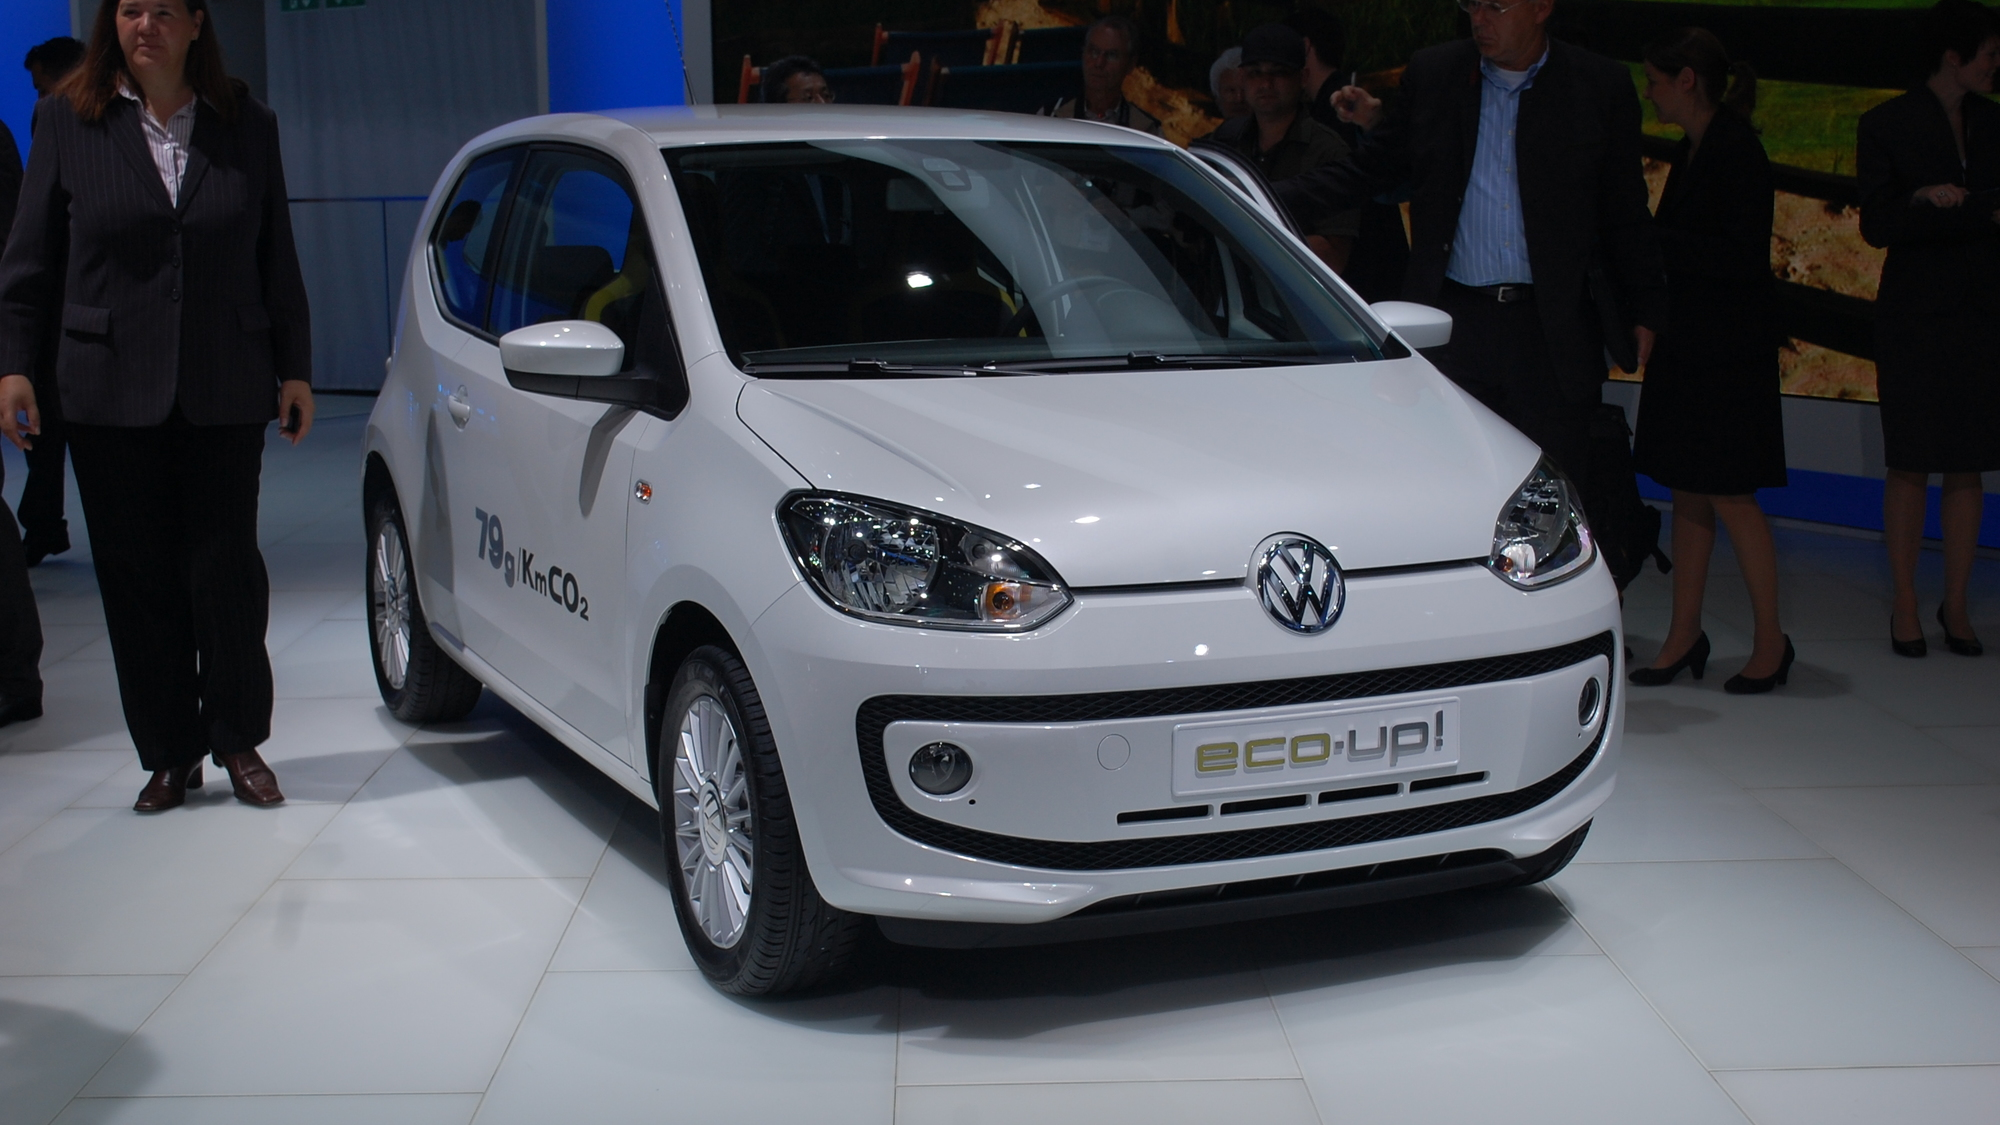 Volkswagen eco-up! live photos, 2011 Frankfurt Auto Show